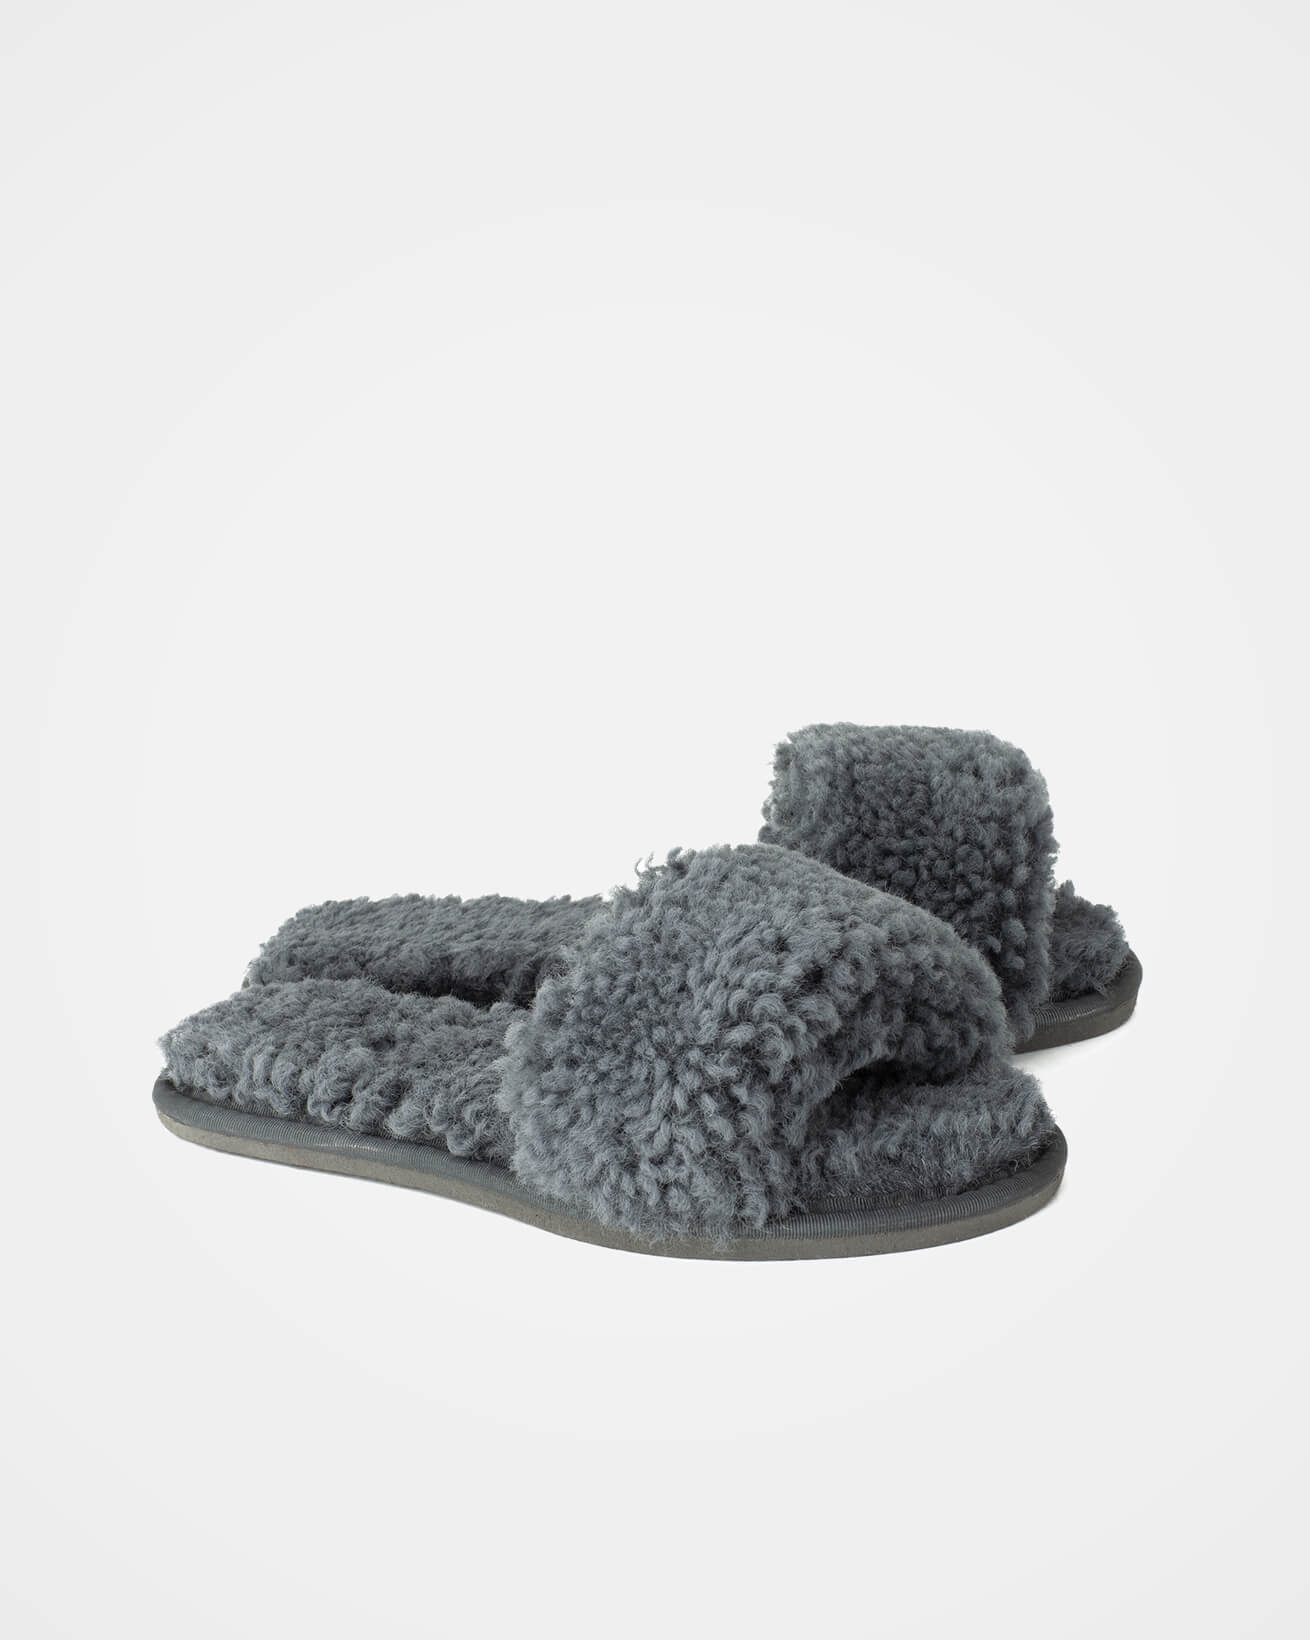 7554_7614_sheepskin-slides_dark-grey_pair_web.jpg